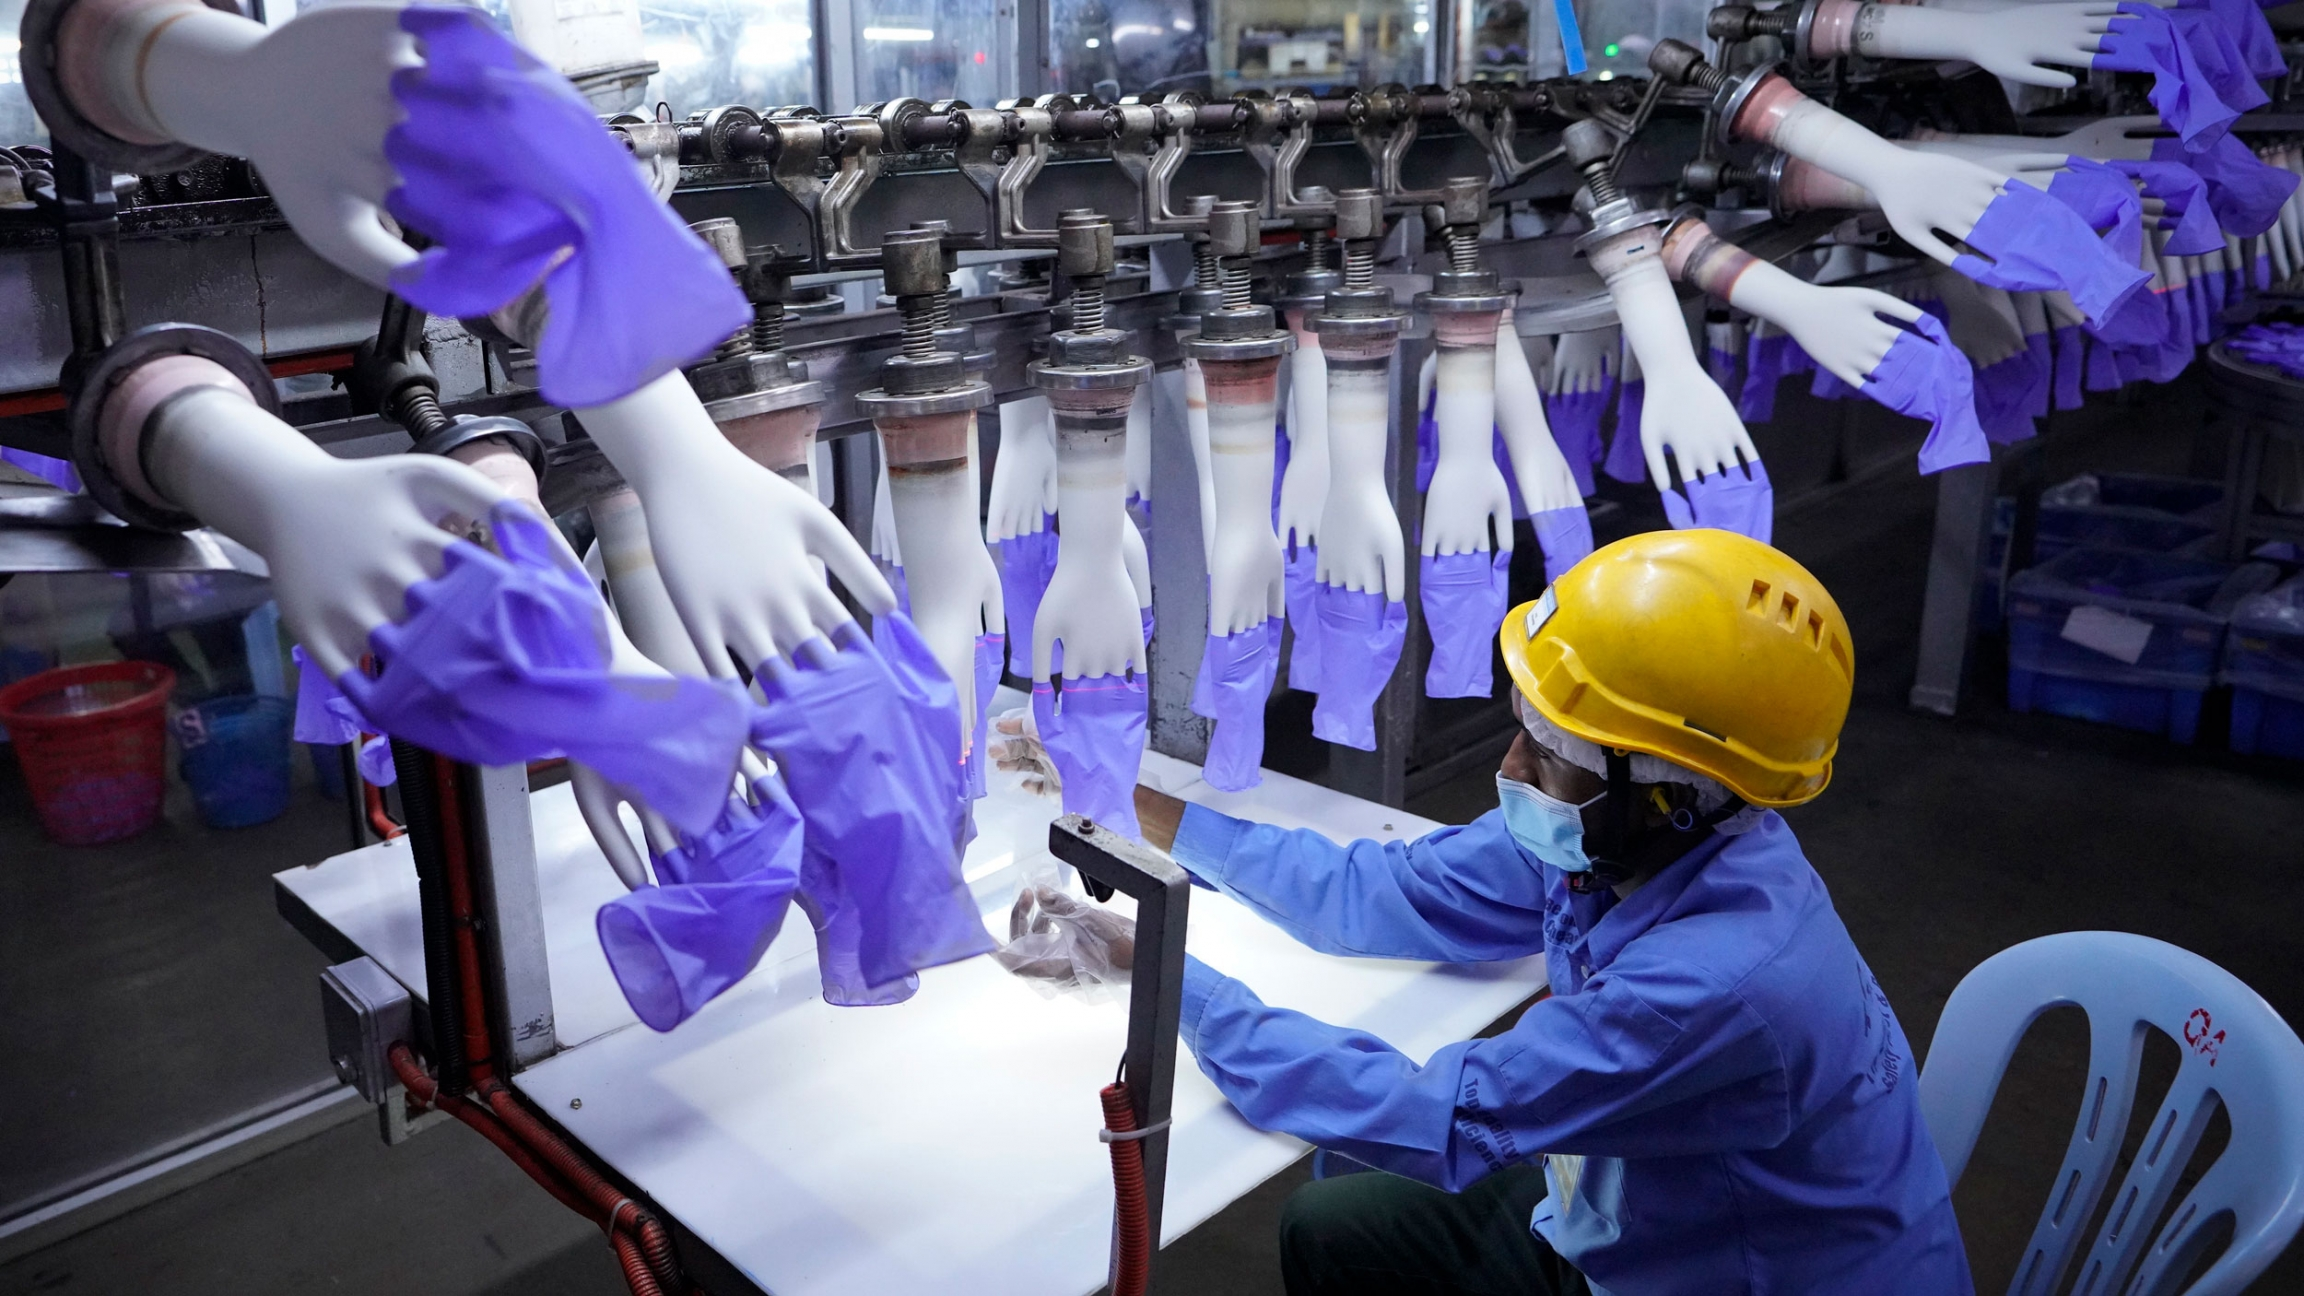 A worker wearing a yellow safety hat inspects disposable blue gloves at a factory.